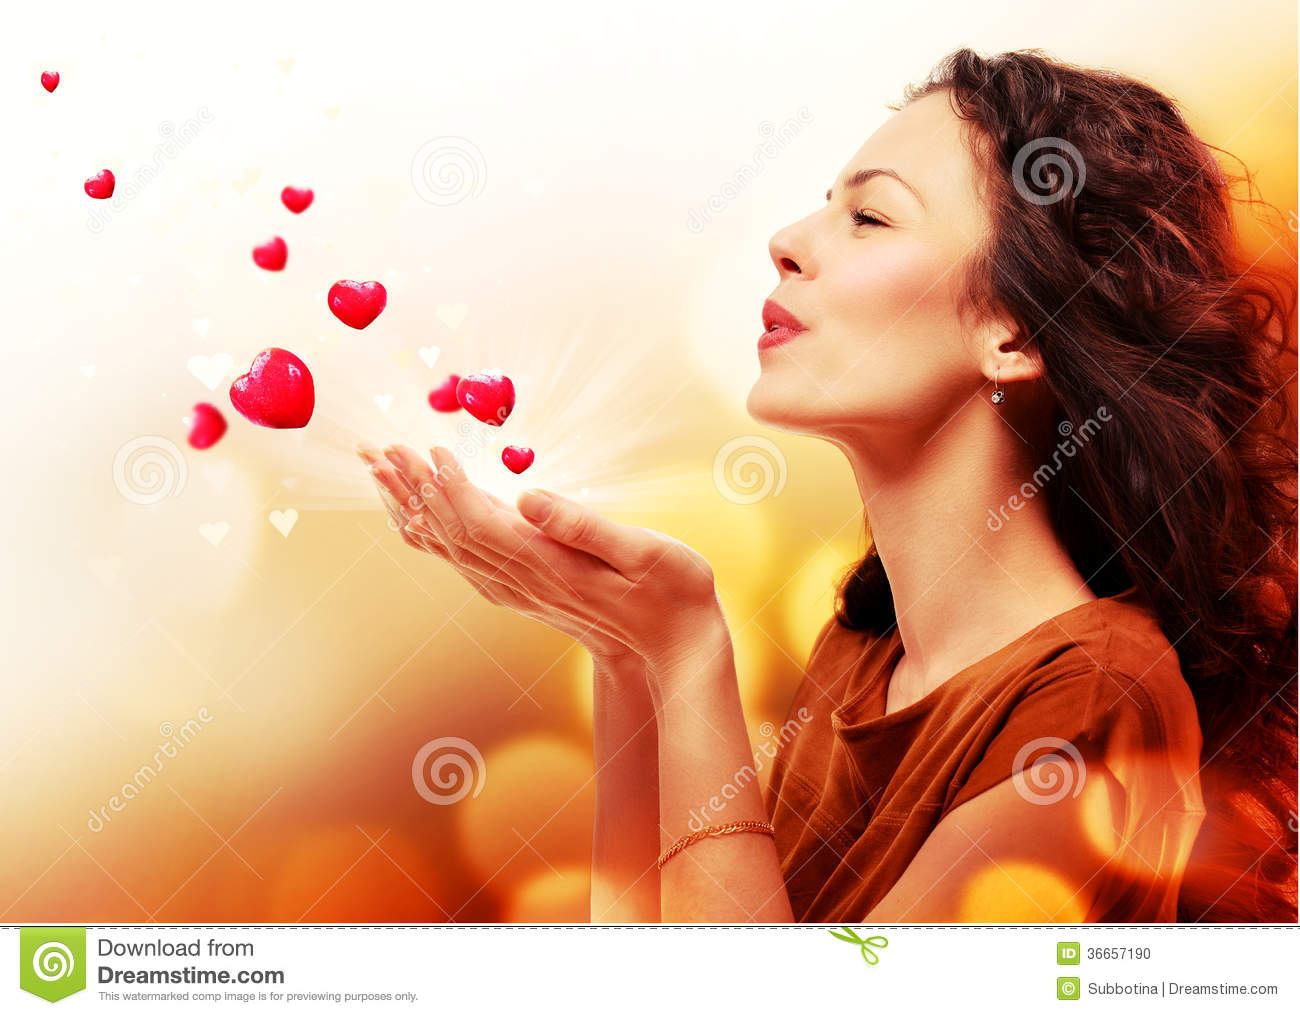 Woman Blowing Hearts from Hands